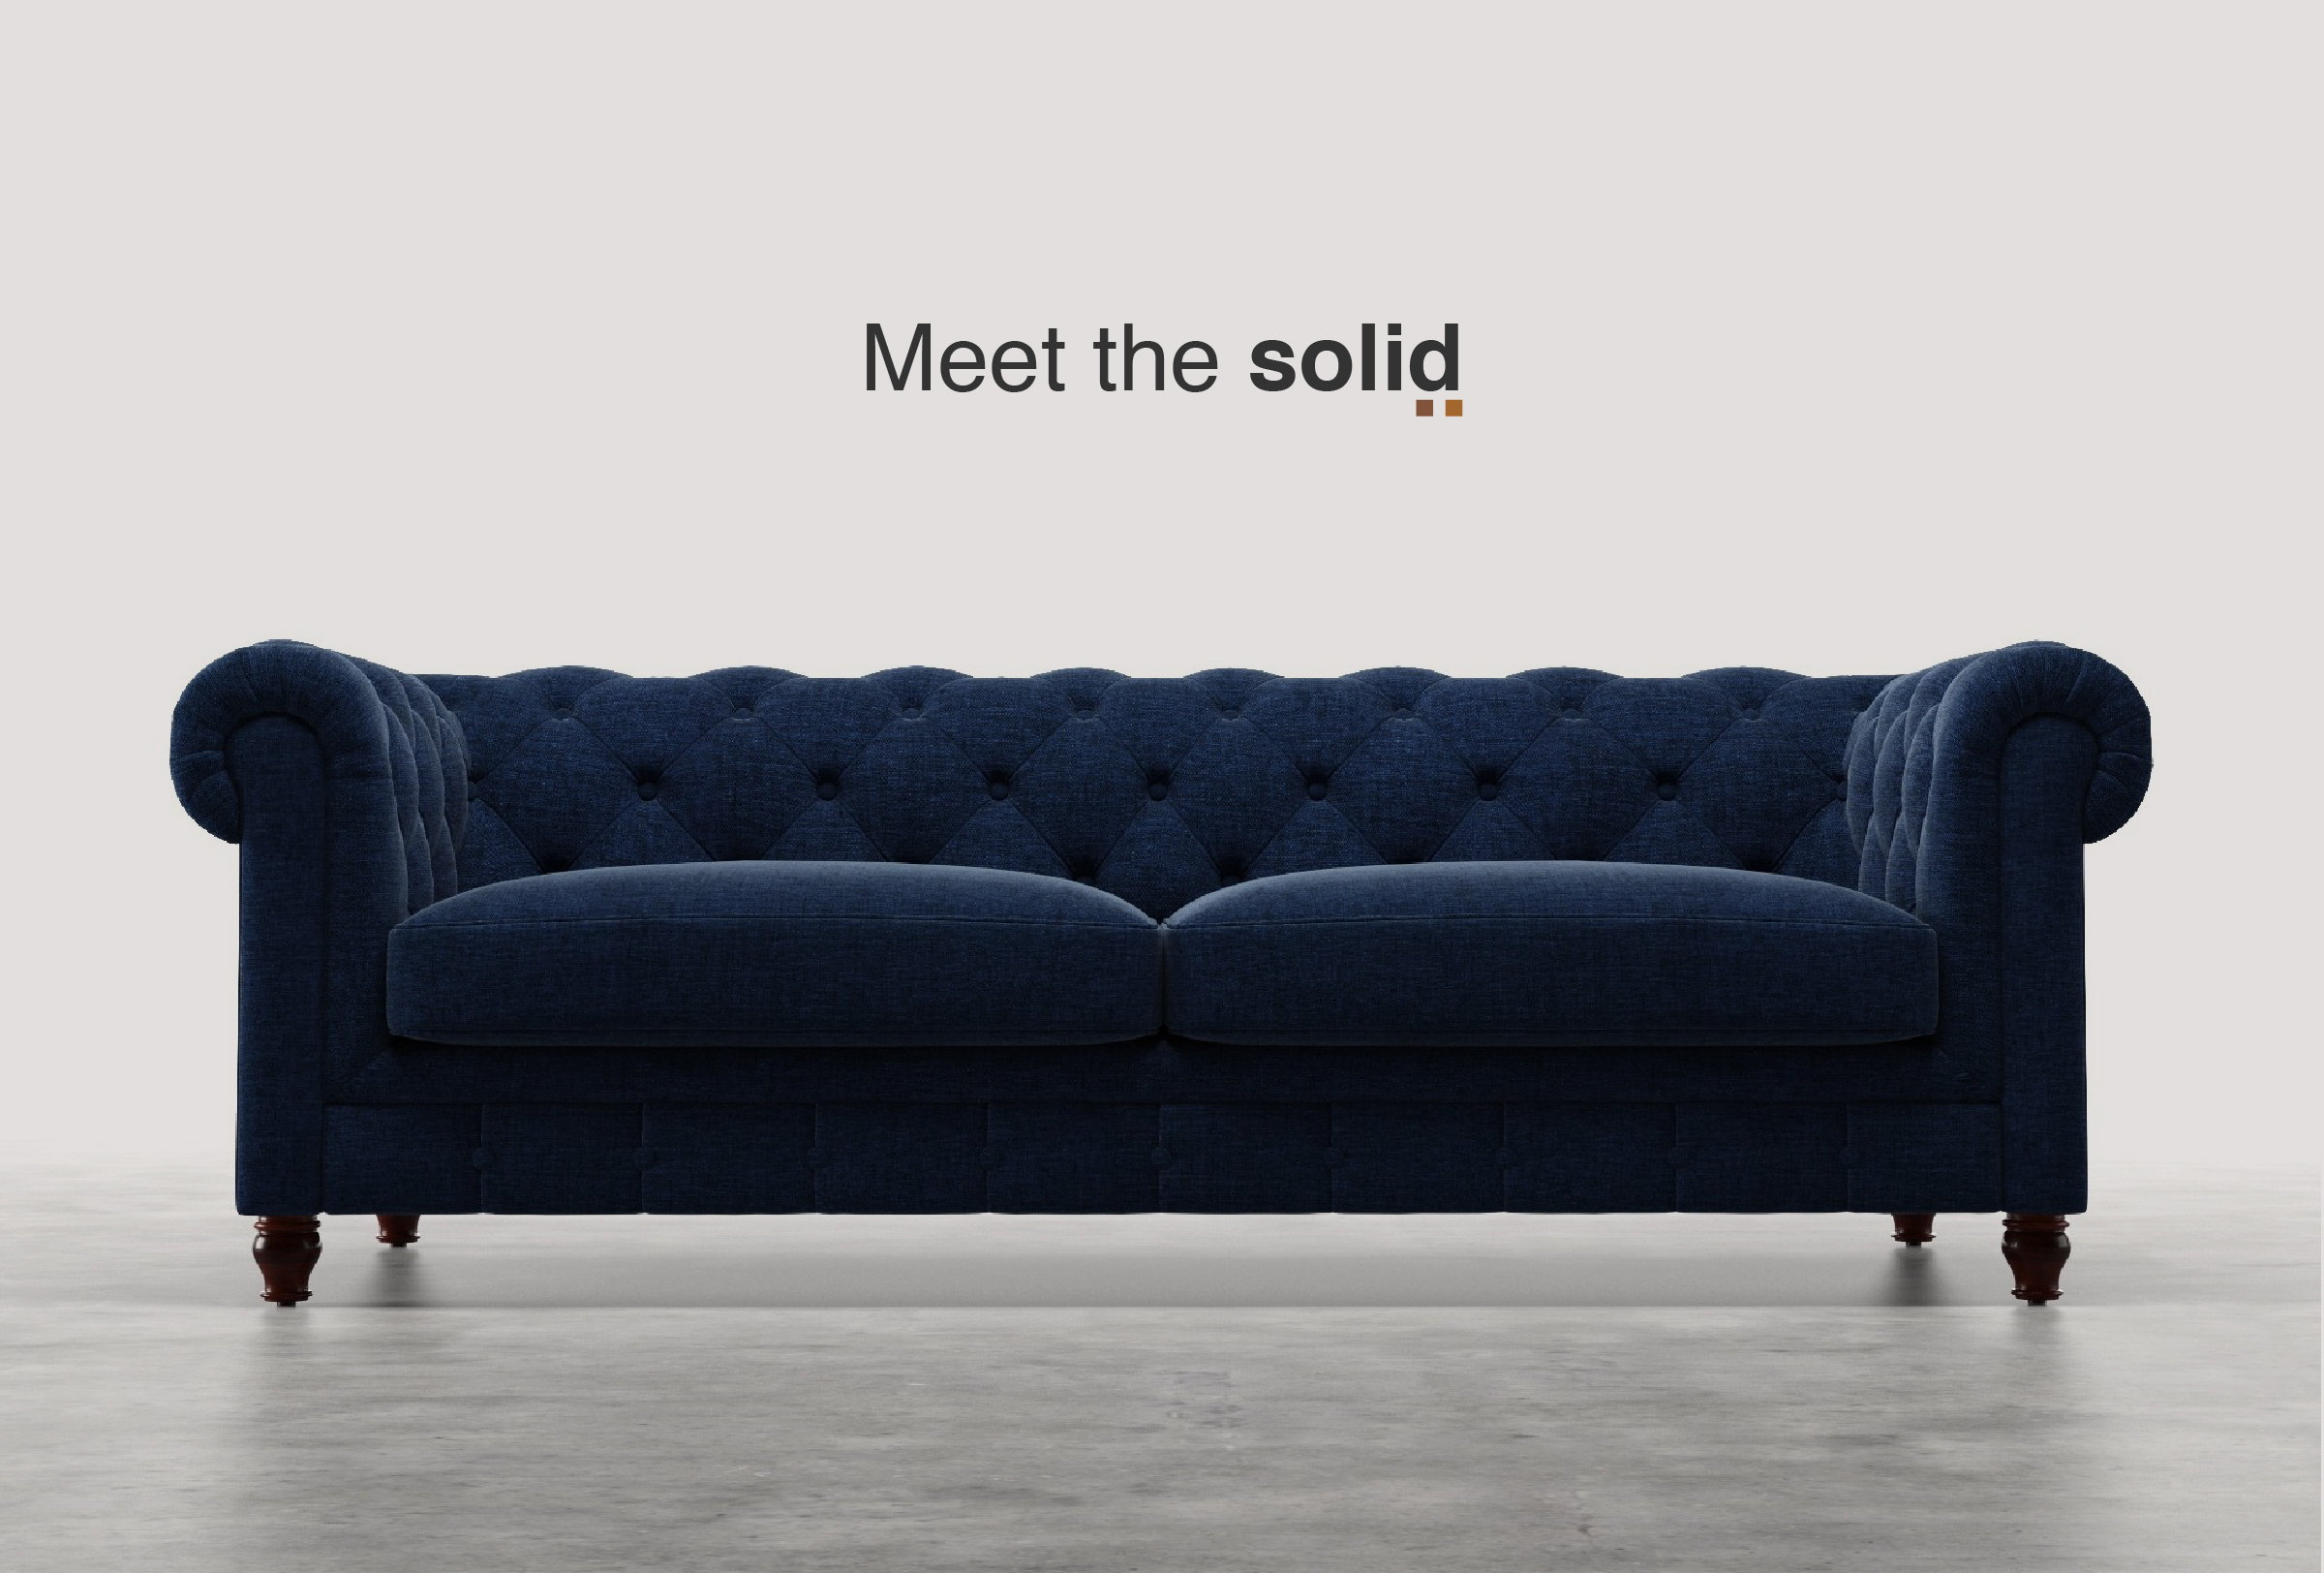 Meet the solid